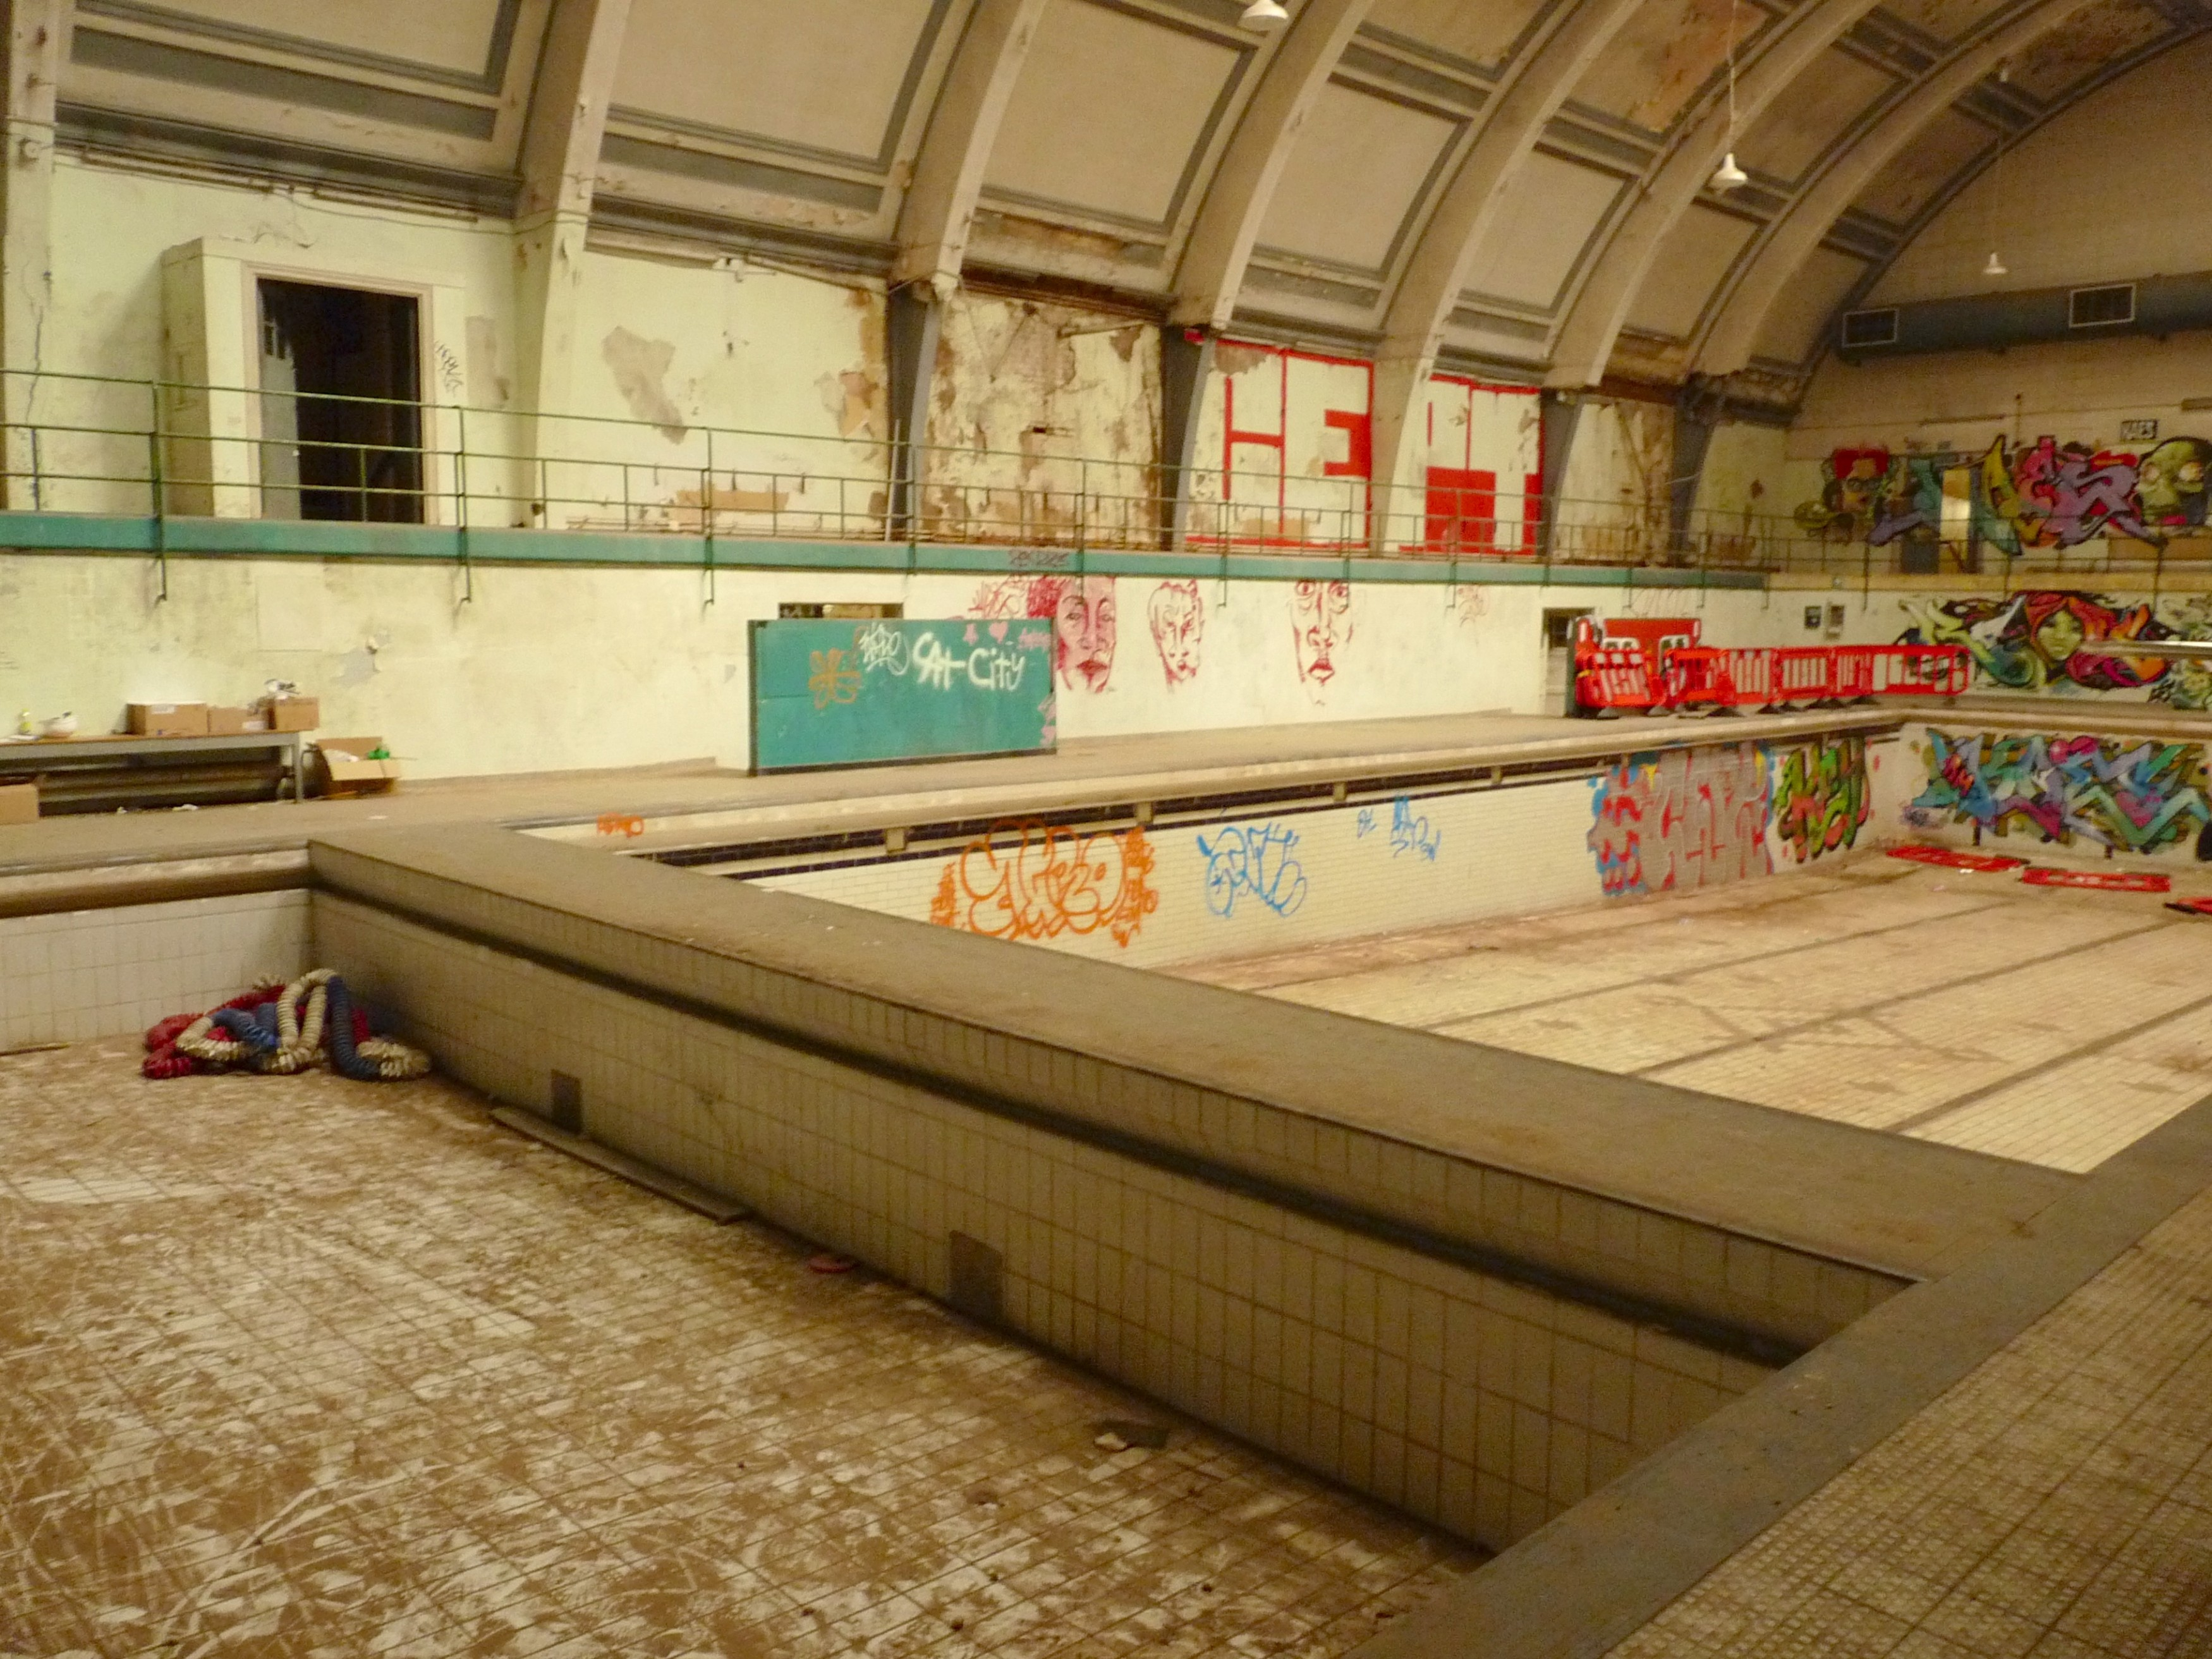 Haggerston Baths 3 Proposals Include A Pool Loving Dalston